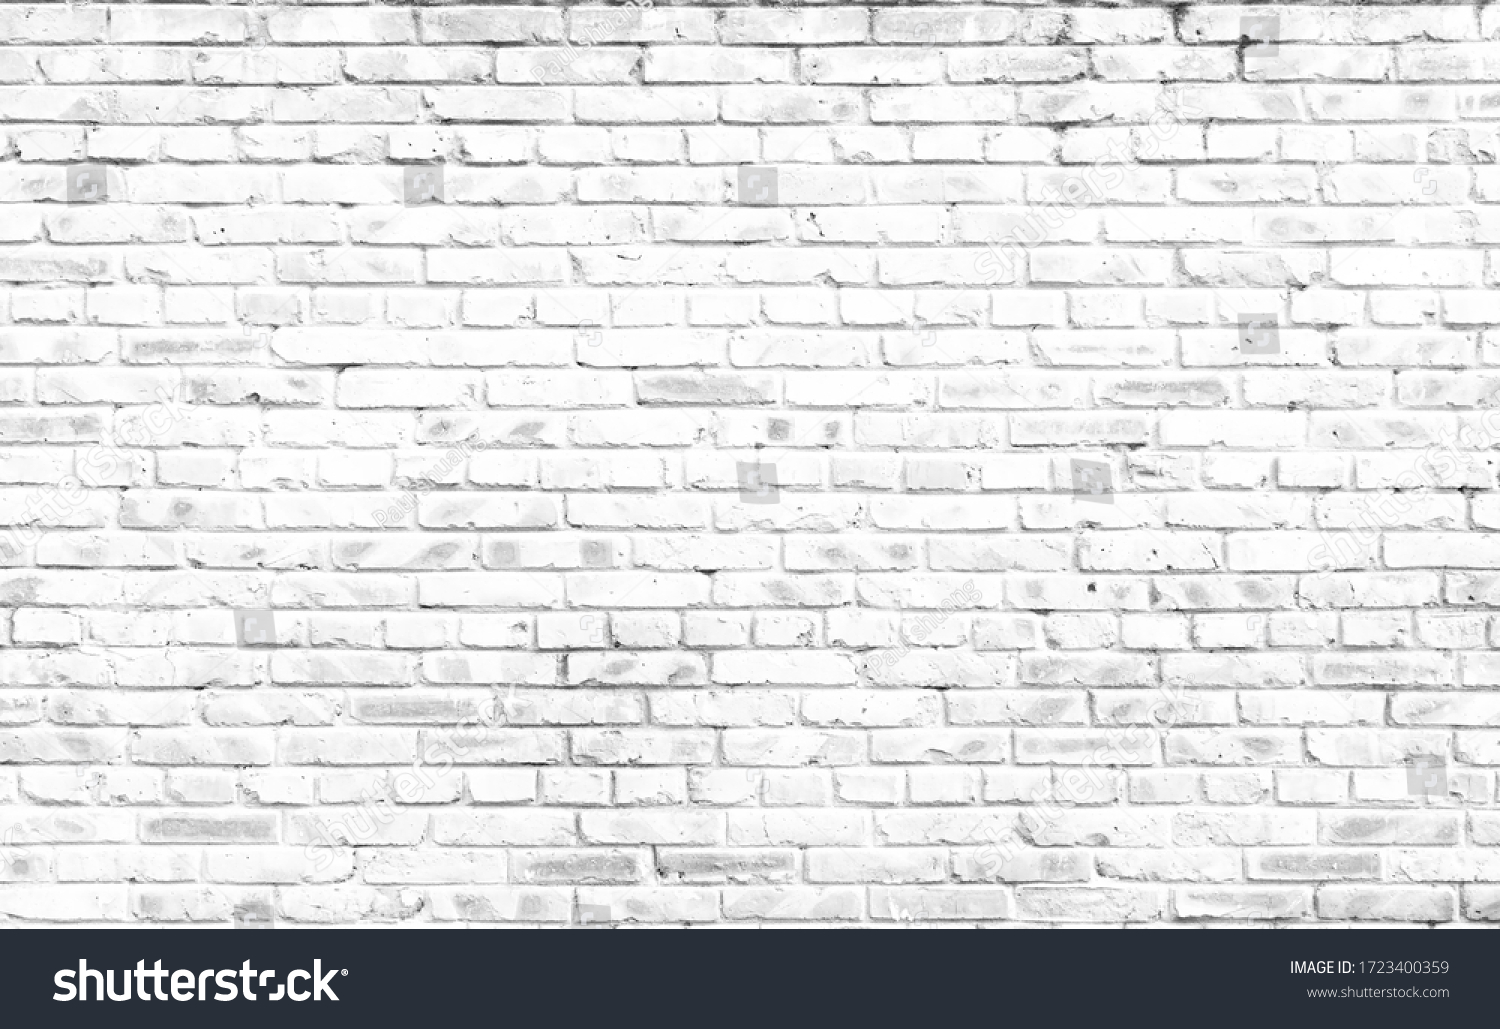 Abstract  white brick wall textured background #1723400359